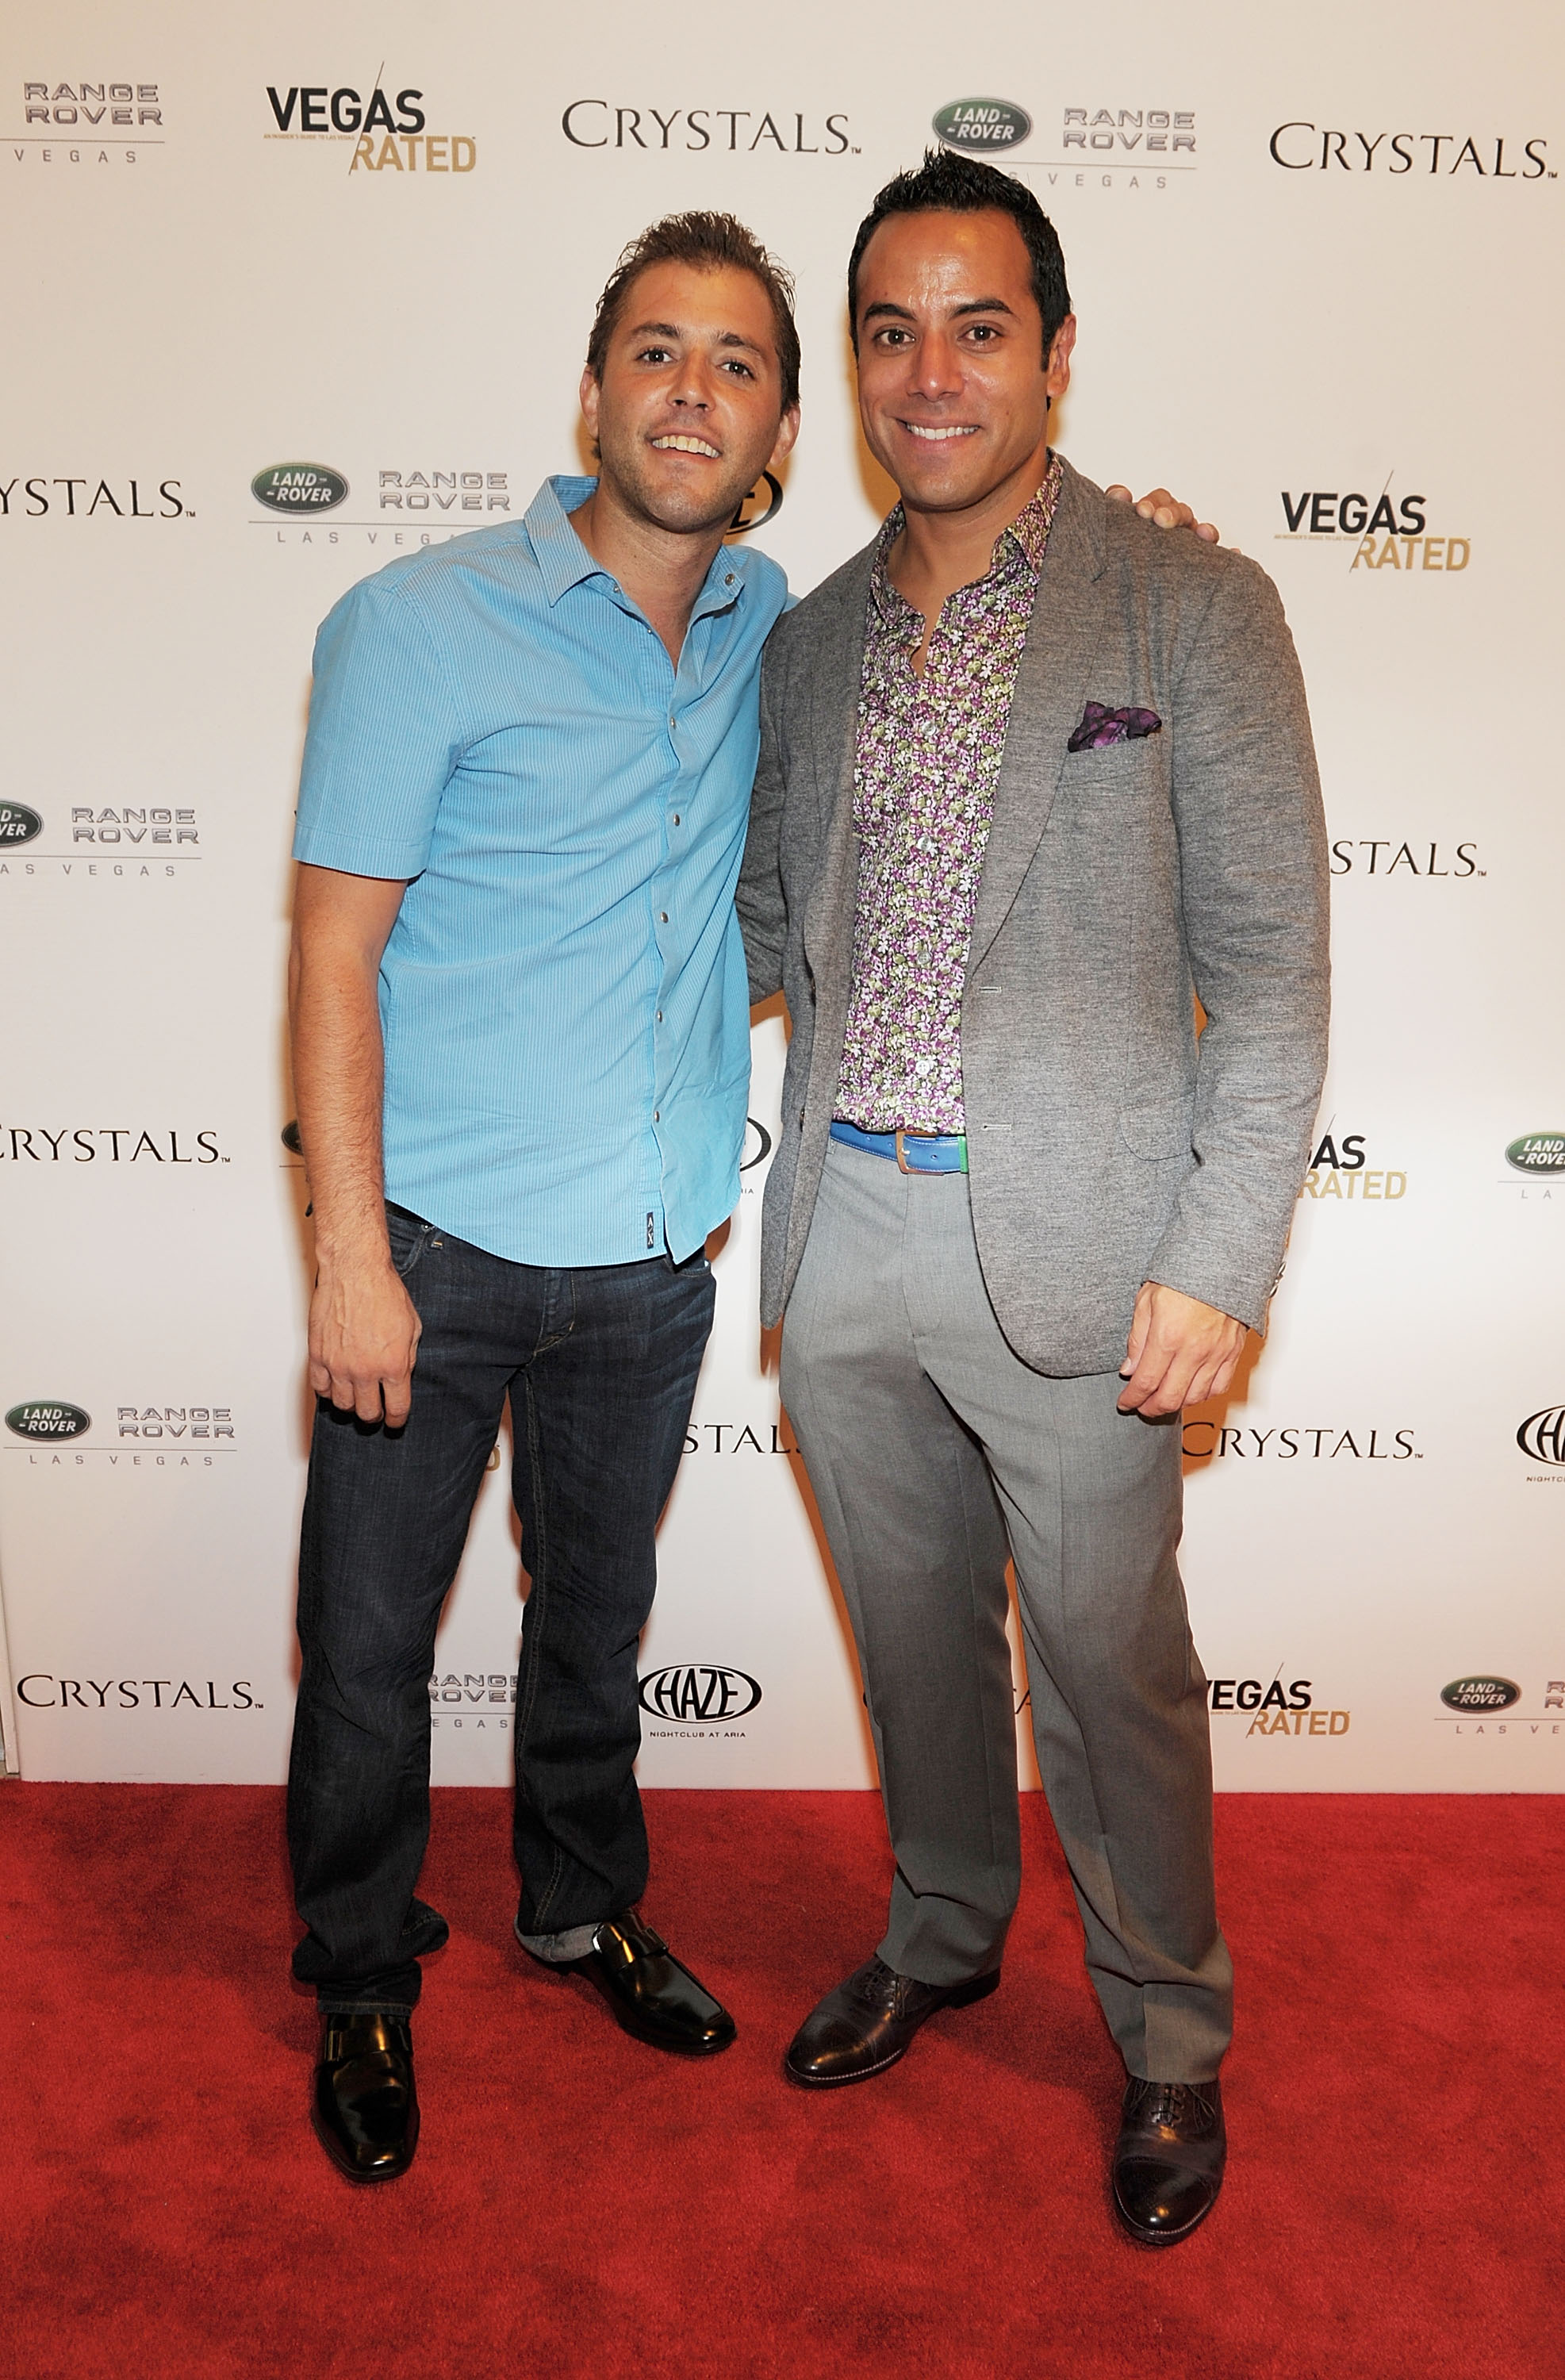 2011 Fashion's Night Out celebration at Crystals - Gavin Goorjian and Chris Saldana